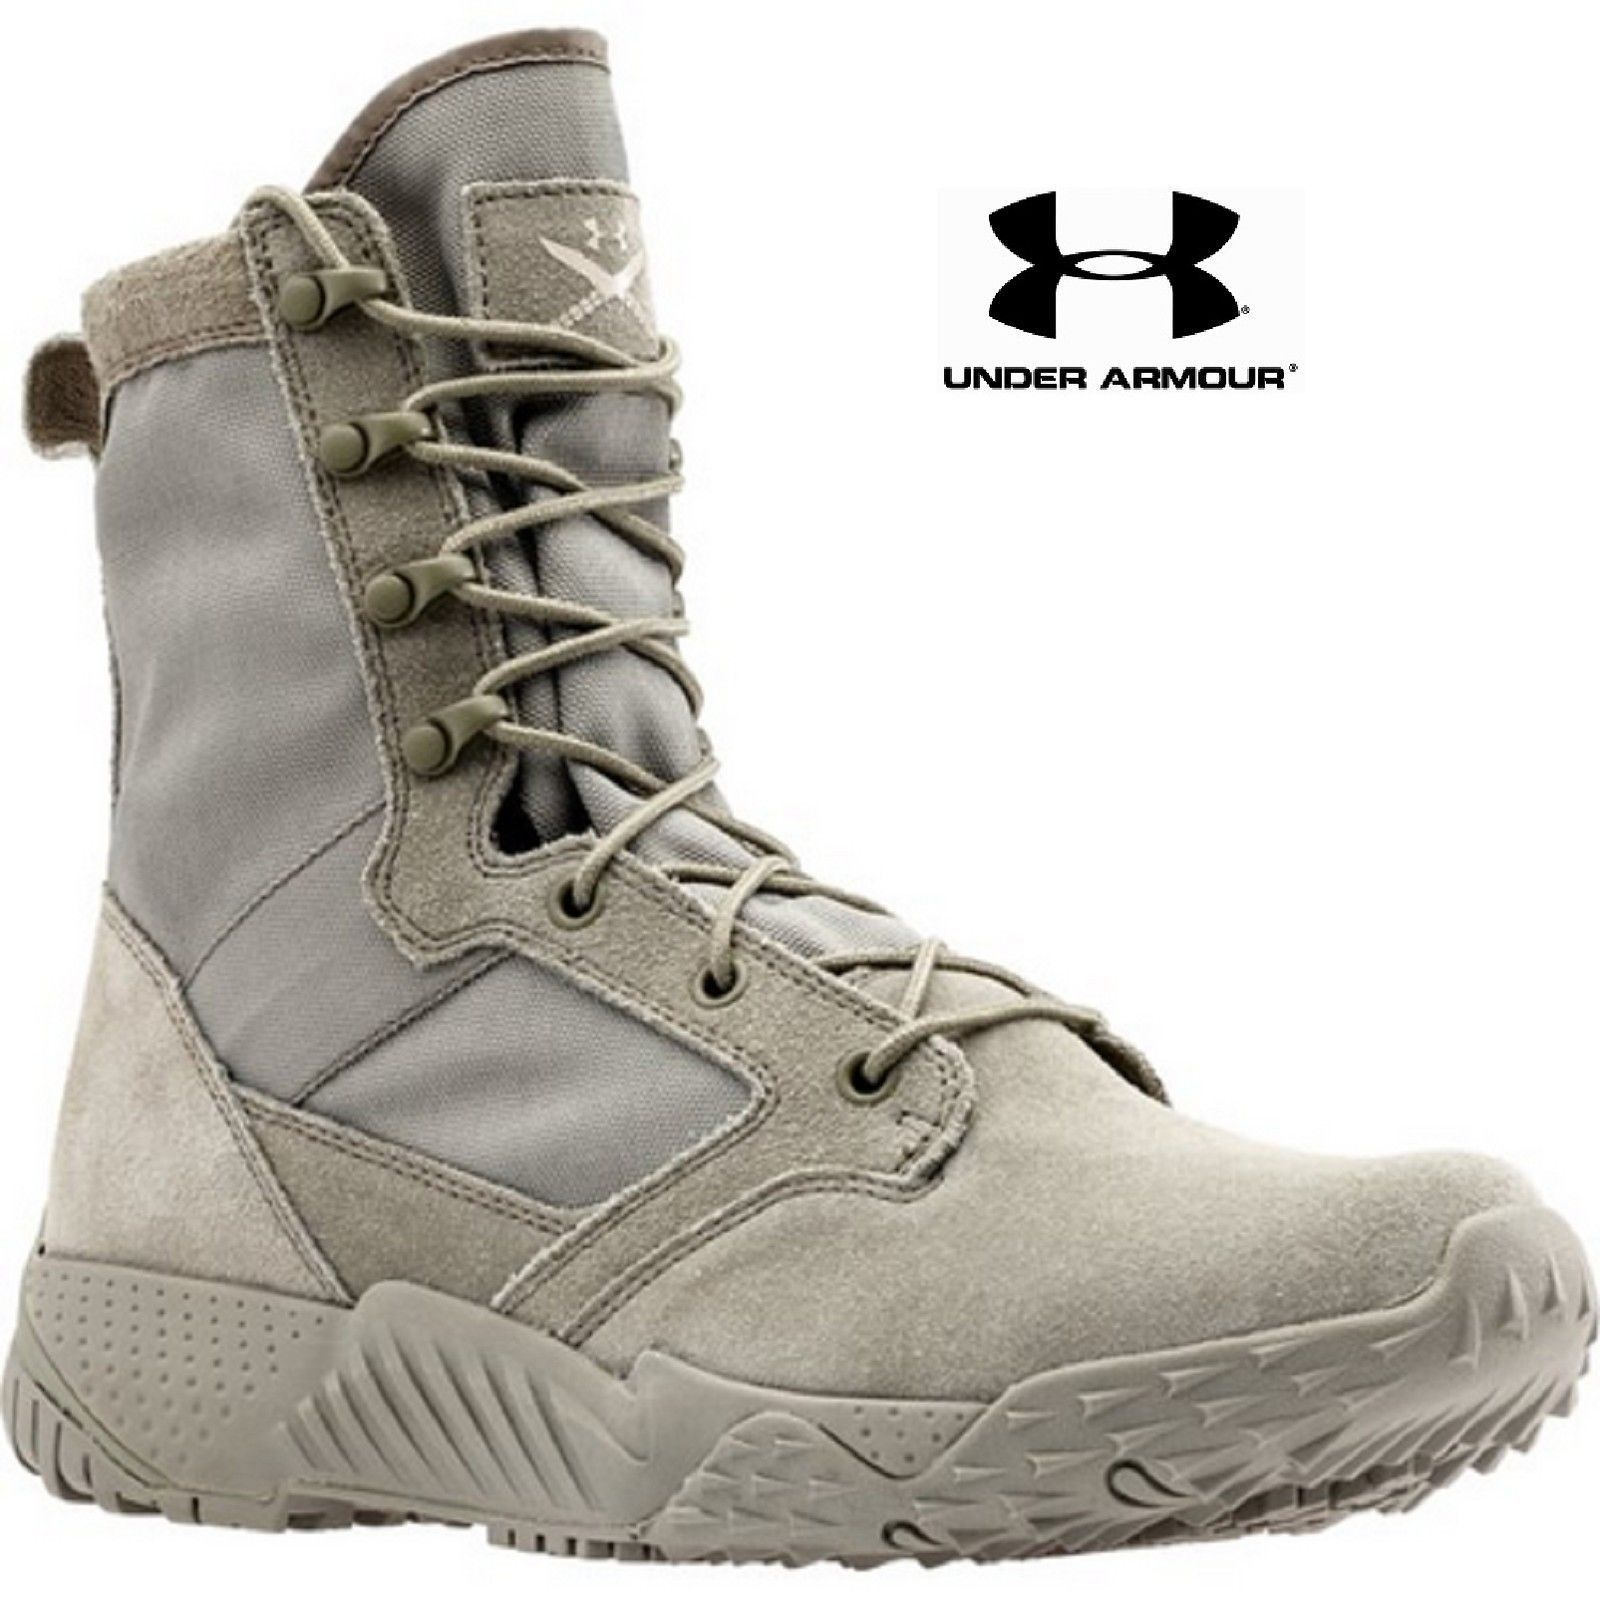 premium selection 35fe1 e05cc UNDER ARMOUR JUNGLE RAT TACTICAL BOOTS UA Storm Gear Uses a DWR Finish to  Repel Water